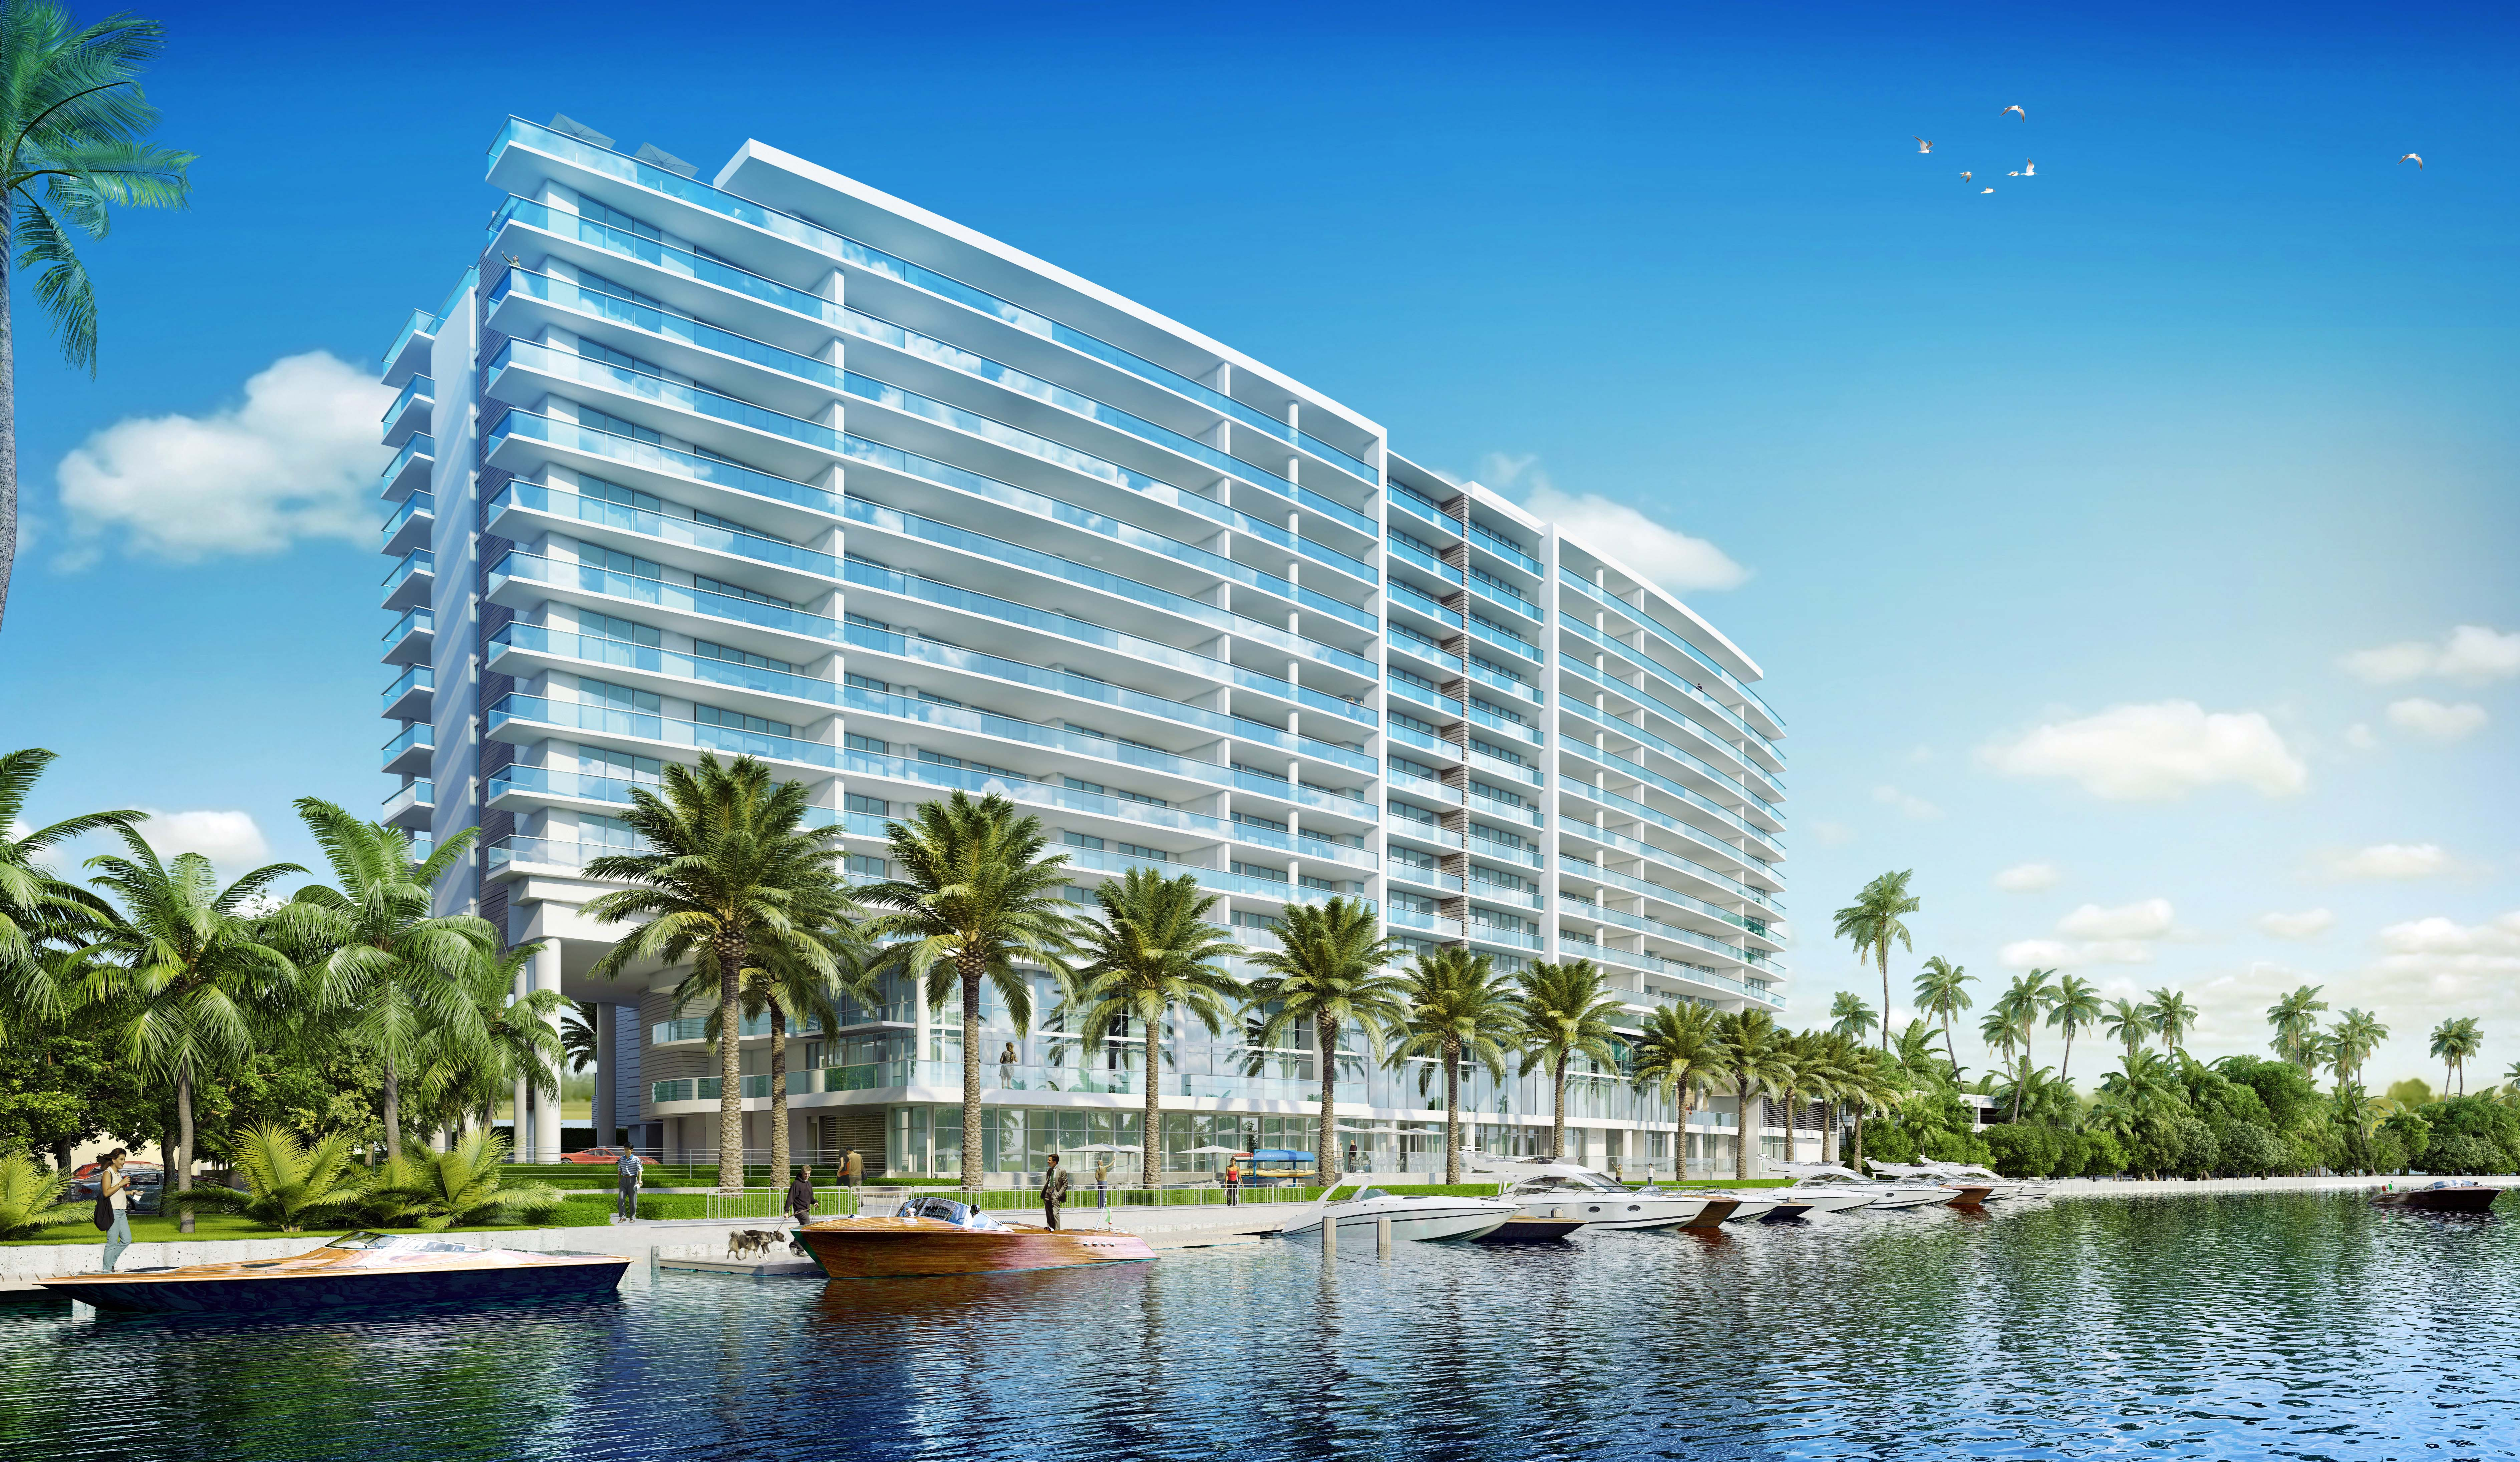 Apartment for Sale at 1180 N Federal Hwy #1001 1180 N Federal Hwy 1001 Fort Lauderdale, Florida, 33304 United States